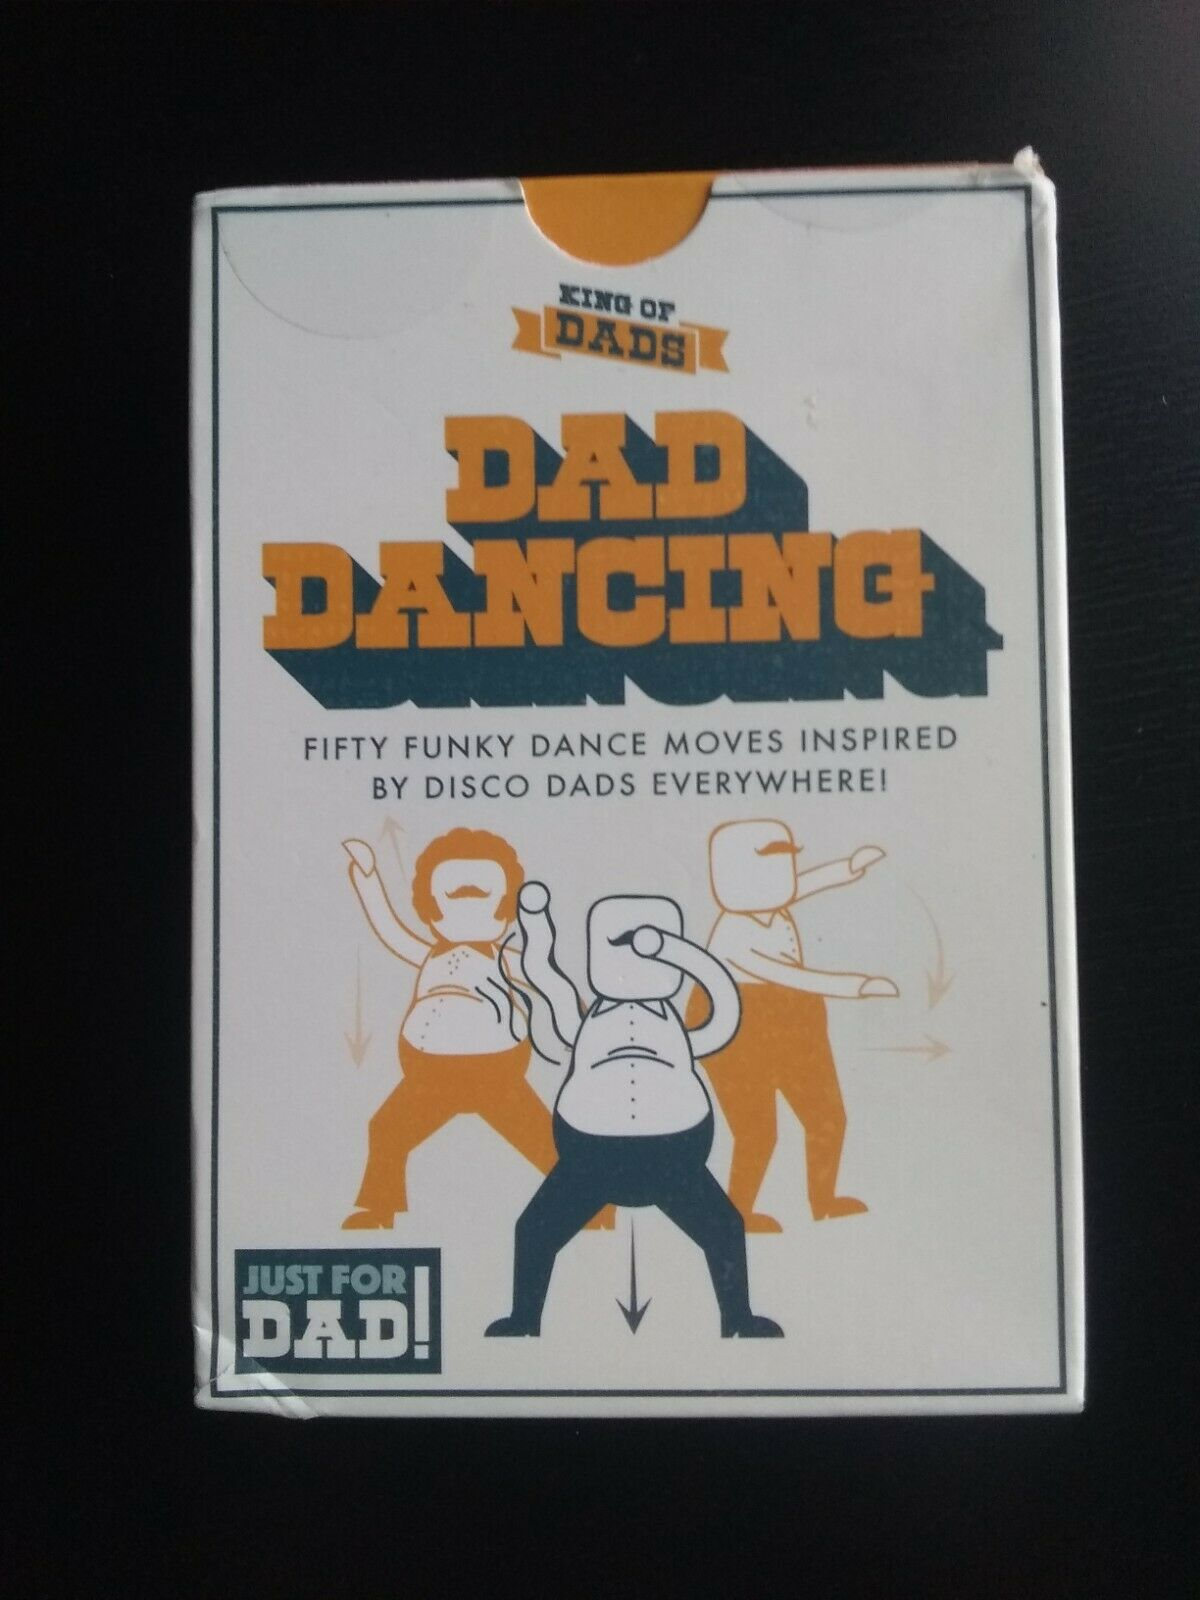 King of DAD DANCING Moves 50 Funky Disco Dance Cards Game Card Set Fathers Gift